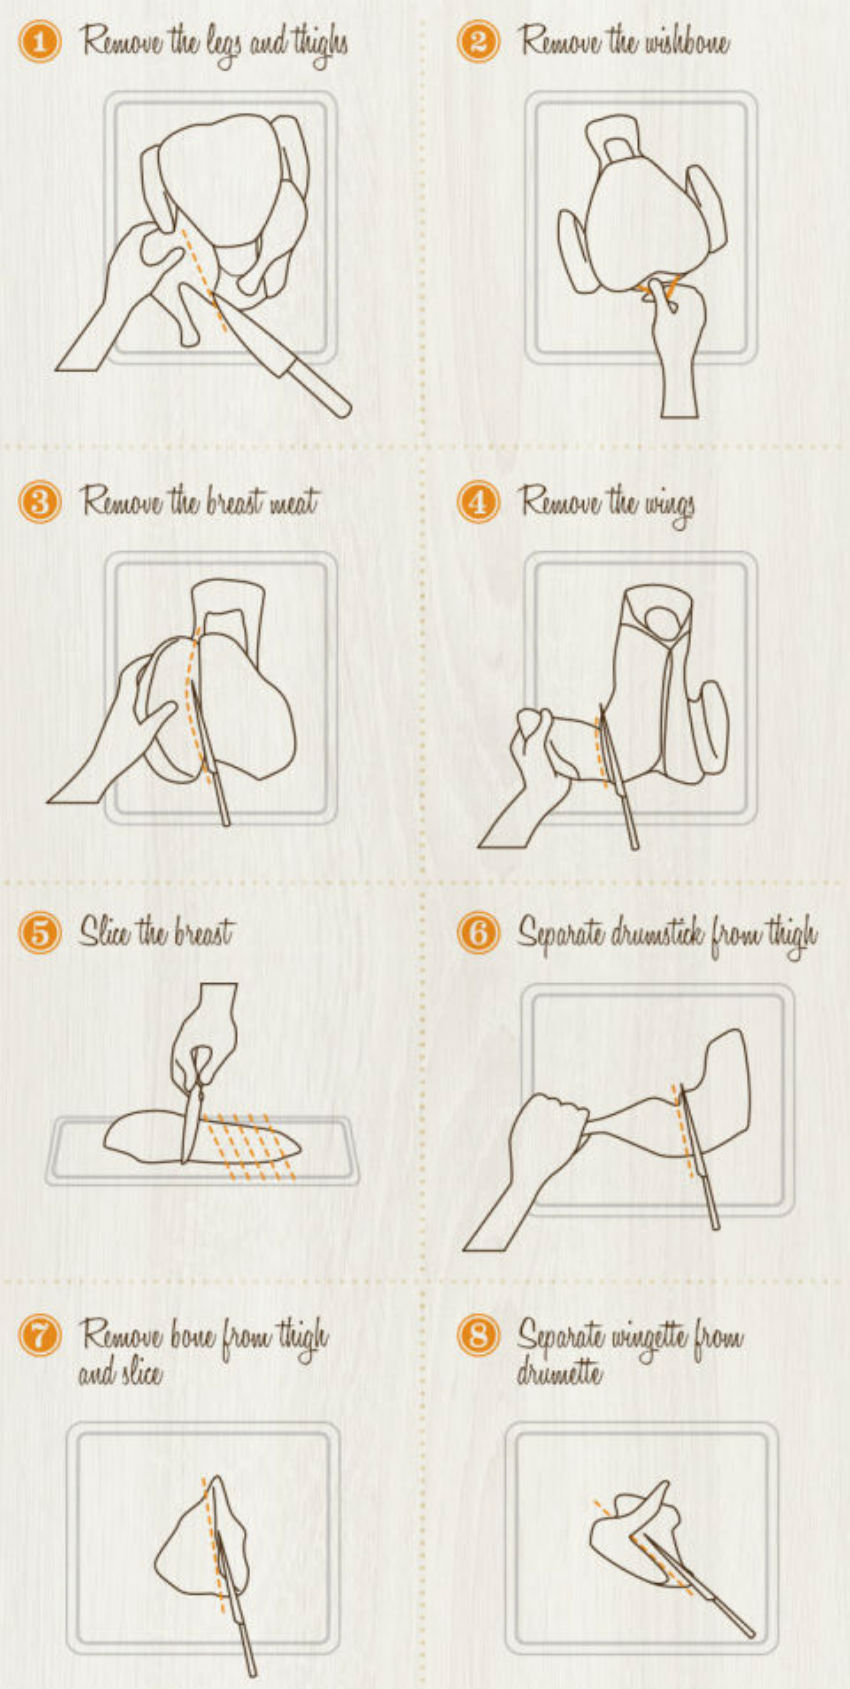 This very instructive chart will teach you how to carve once and for all. Image Source: Good Housekeeping